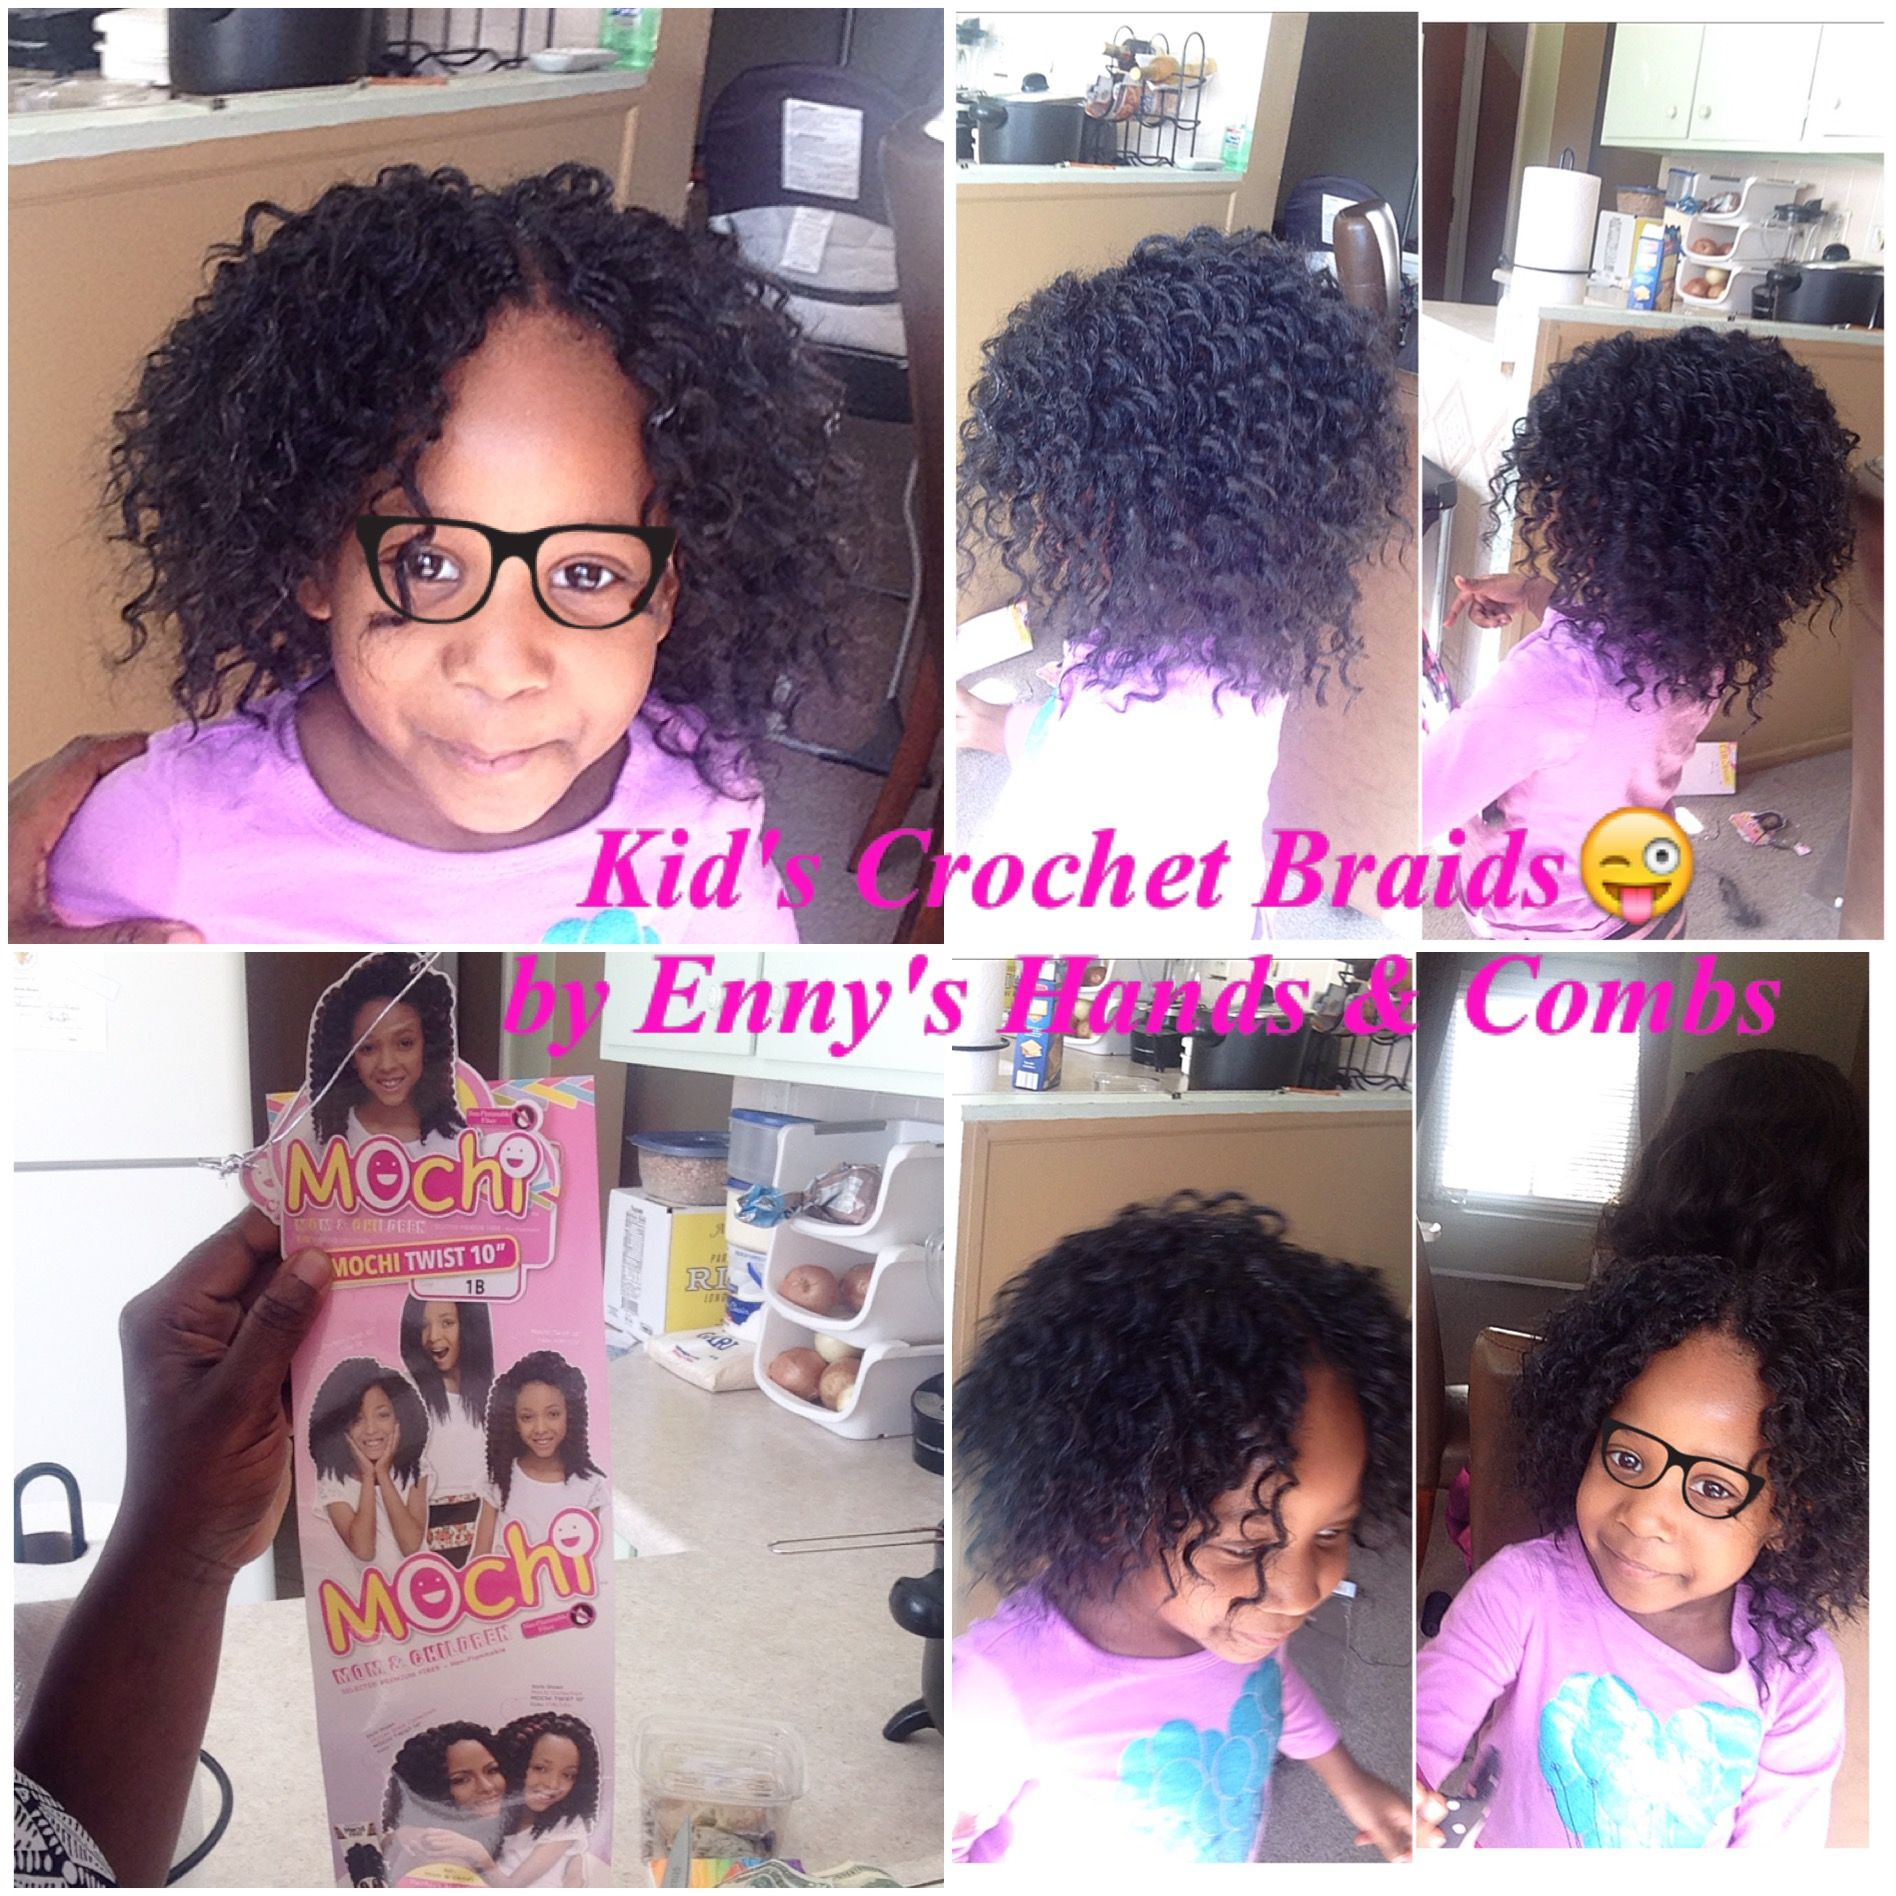 Kids Crochet Braids Styles By Enny S Hands Amp Combs